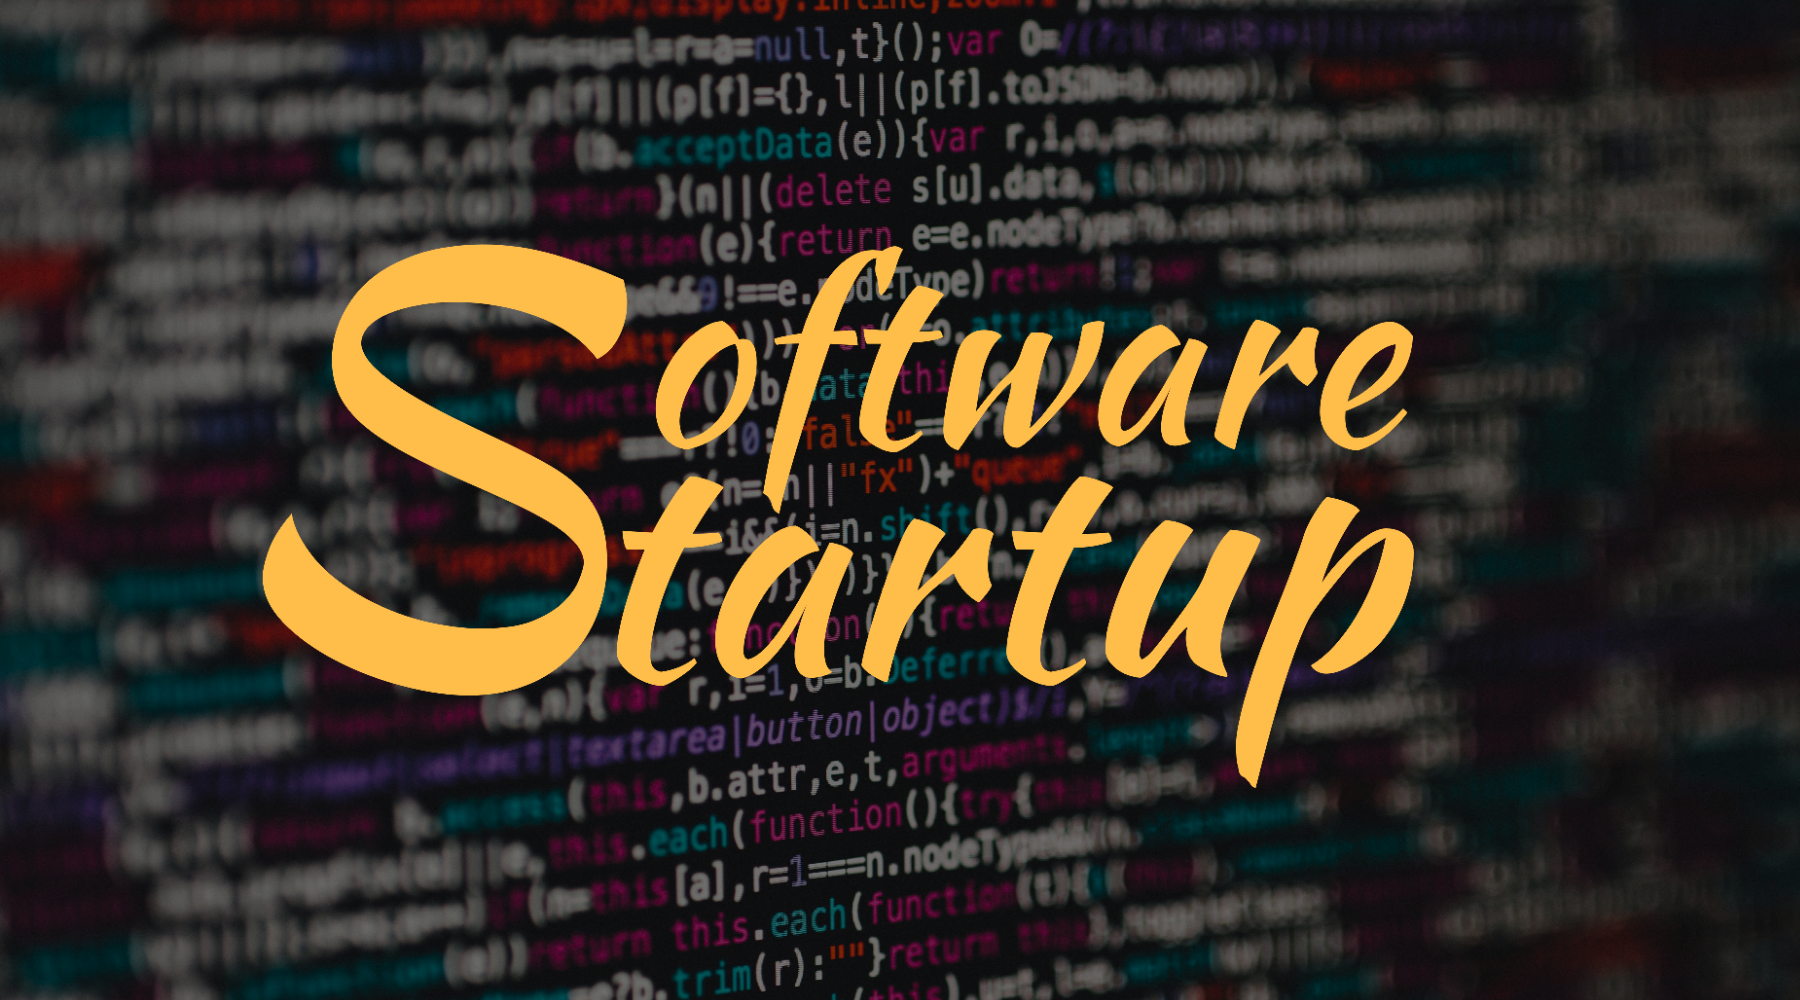 An Easy Roadmap to Create a Successful Software Startup